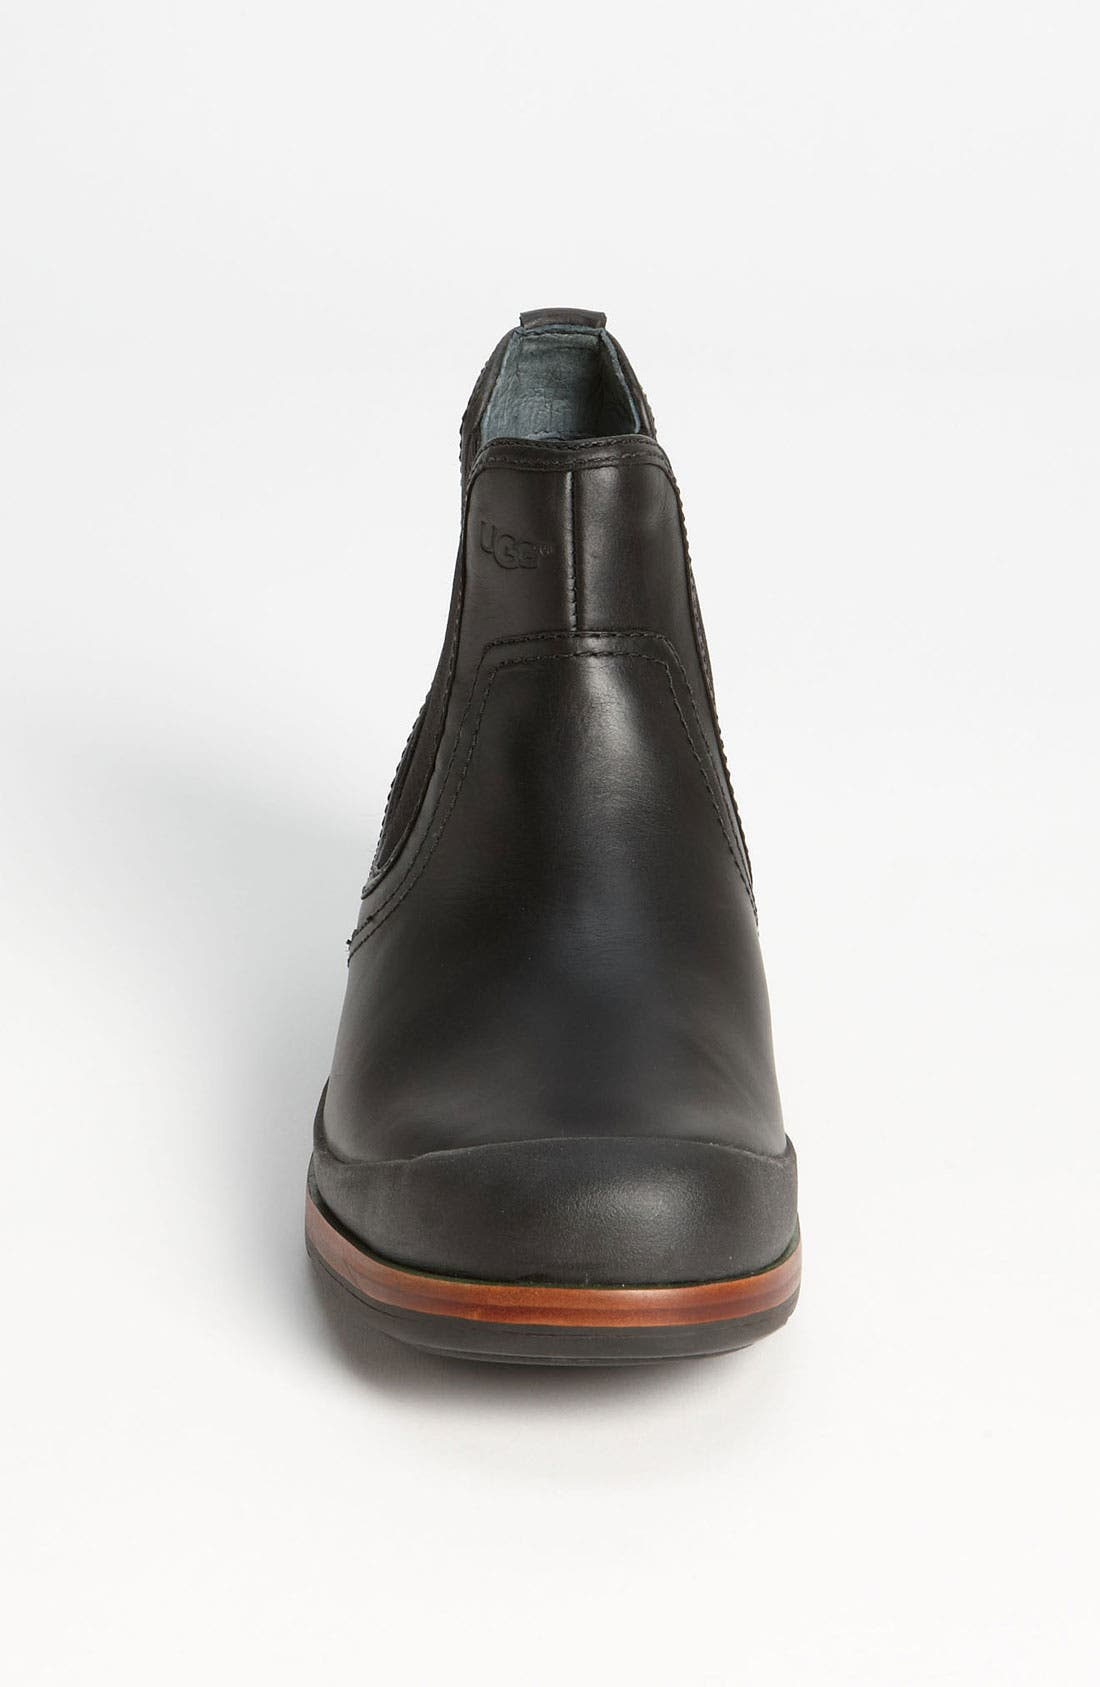 Australia 'Matteson' Chelsea Boot,                             Alternate thumbnail 3, color,                             001